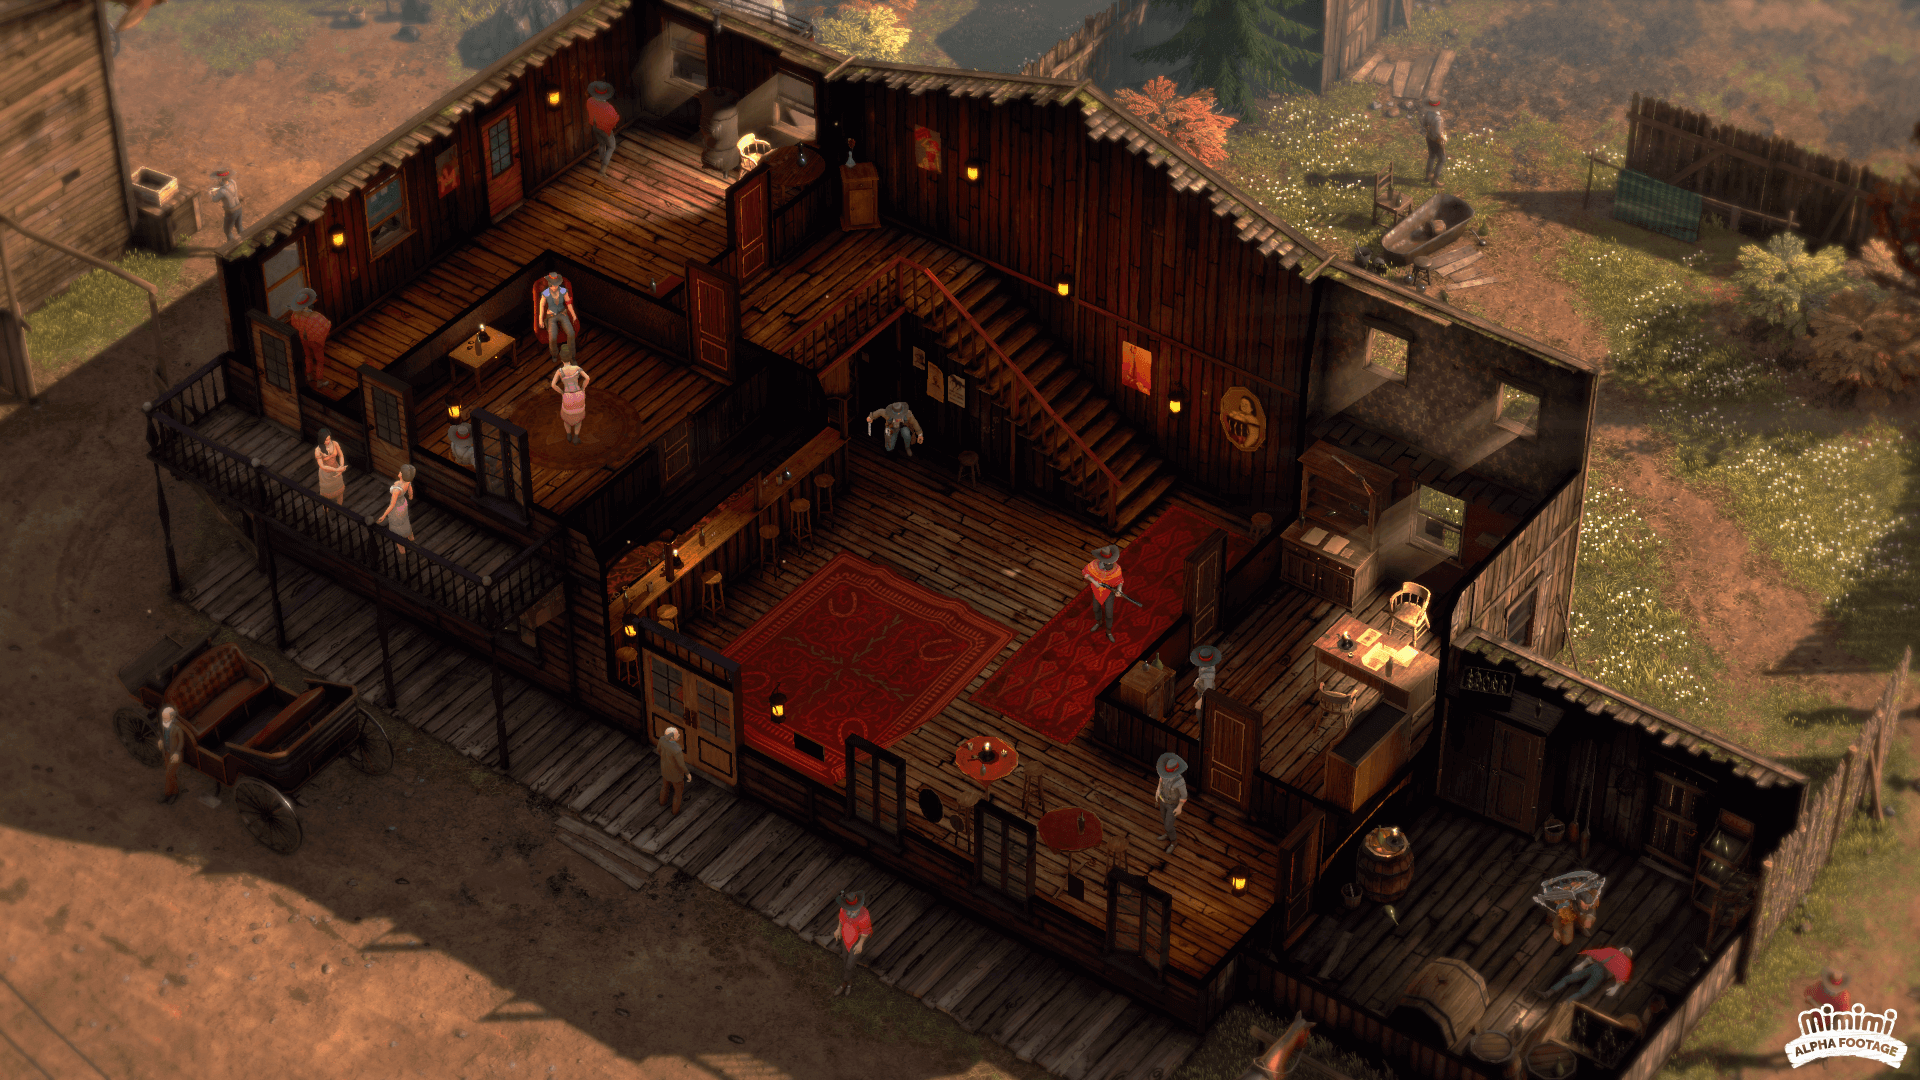 Desperados Iii Dev Blog 3 Is Dedicated To Illustration Gamespace Com